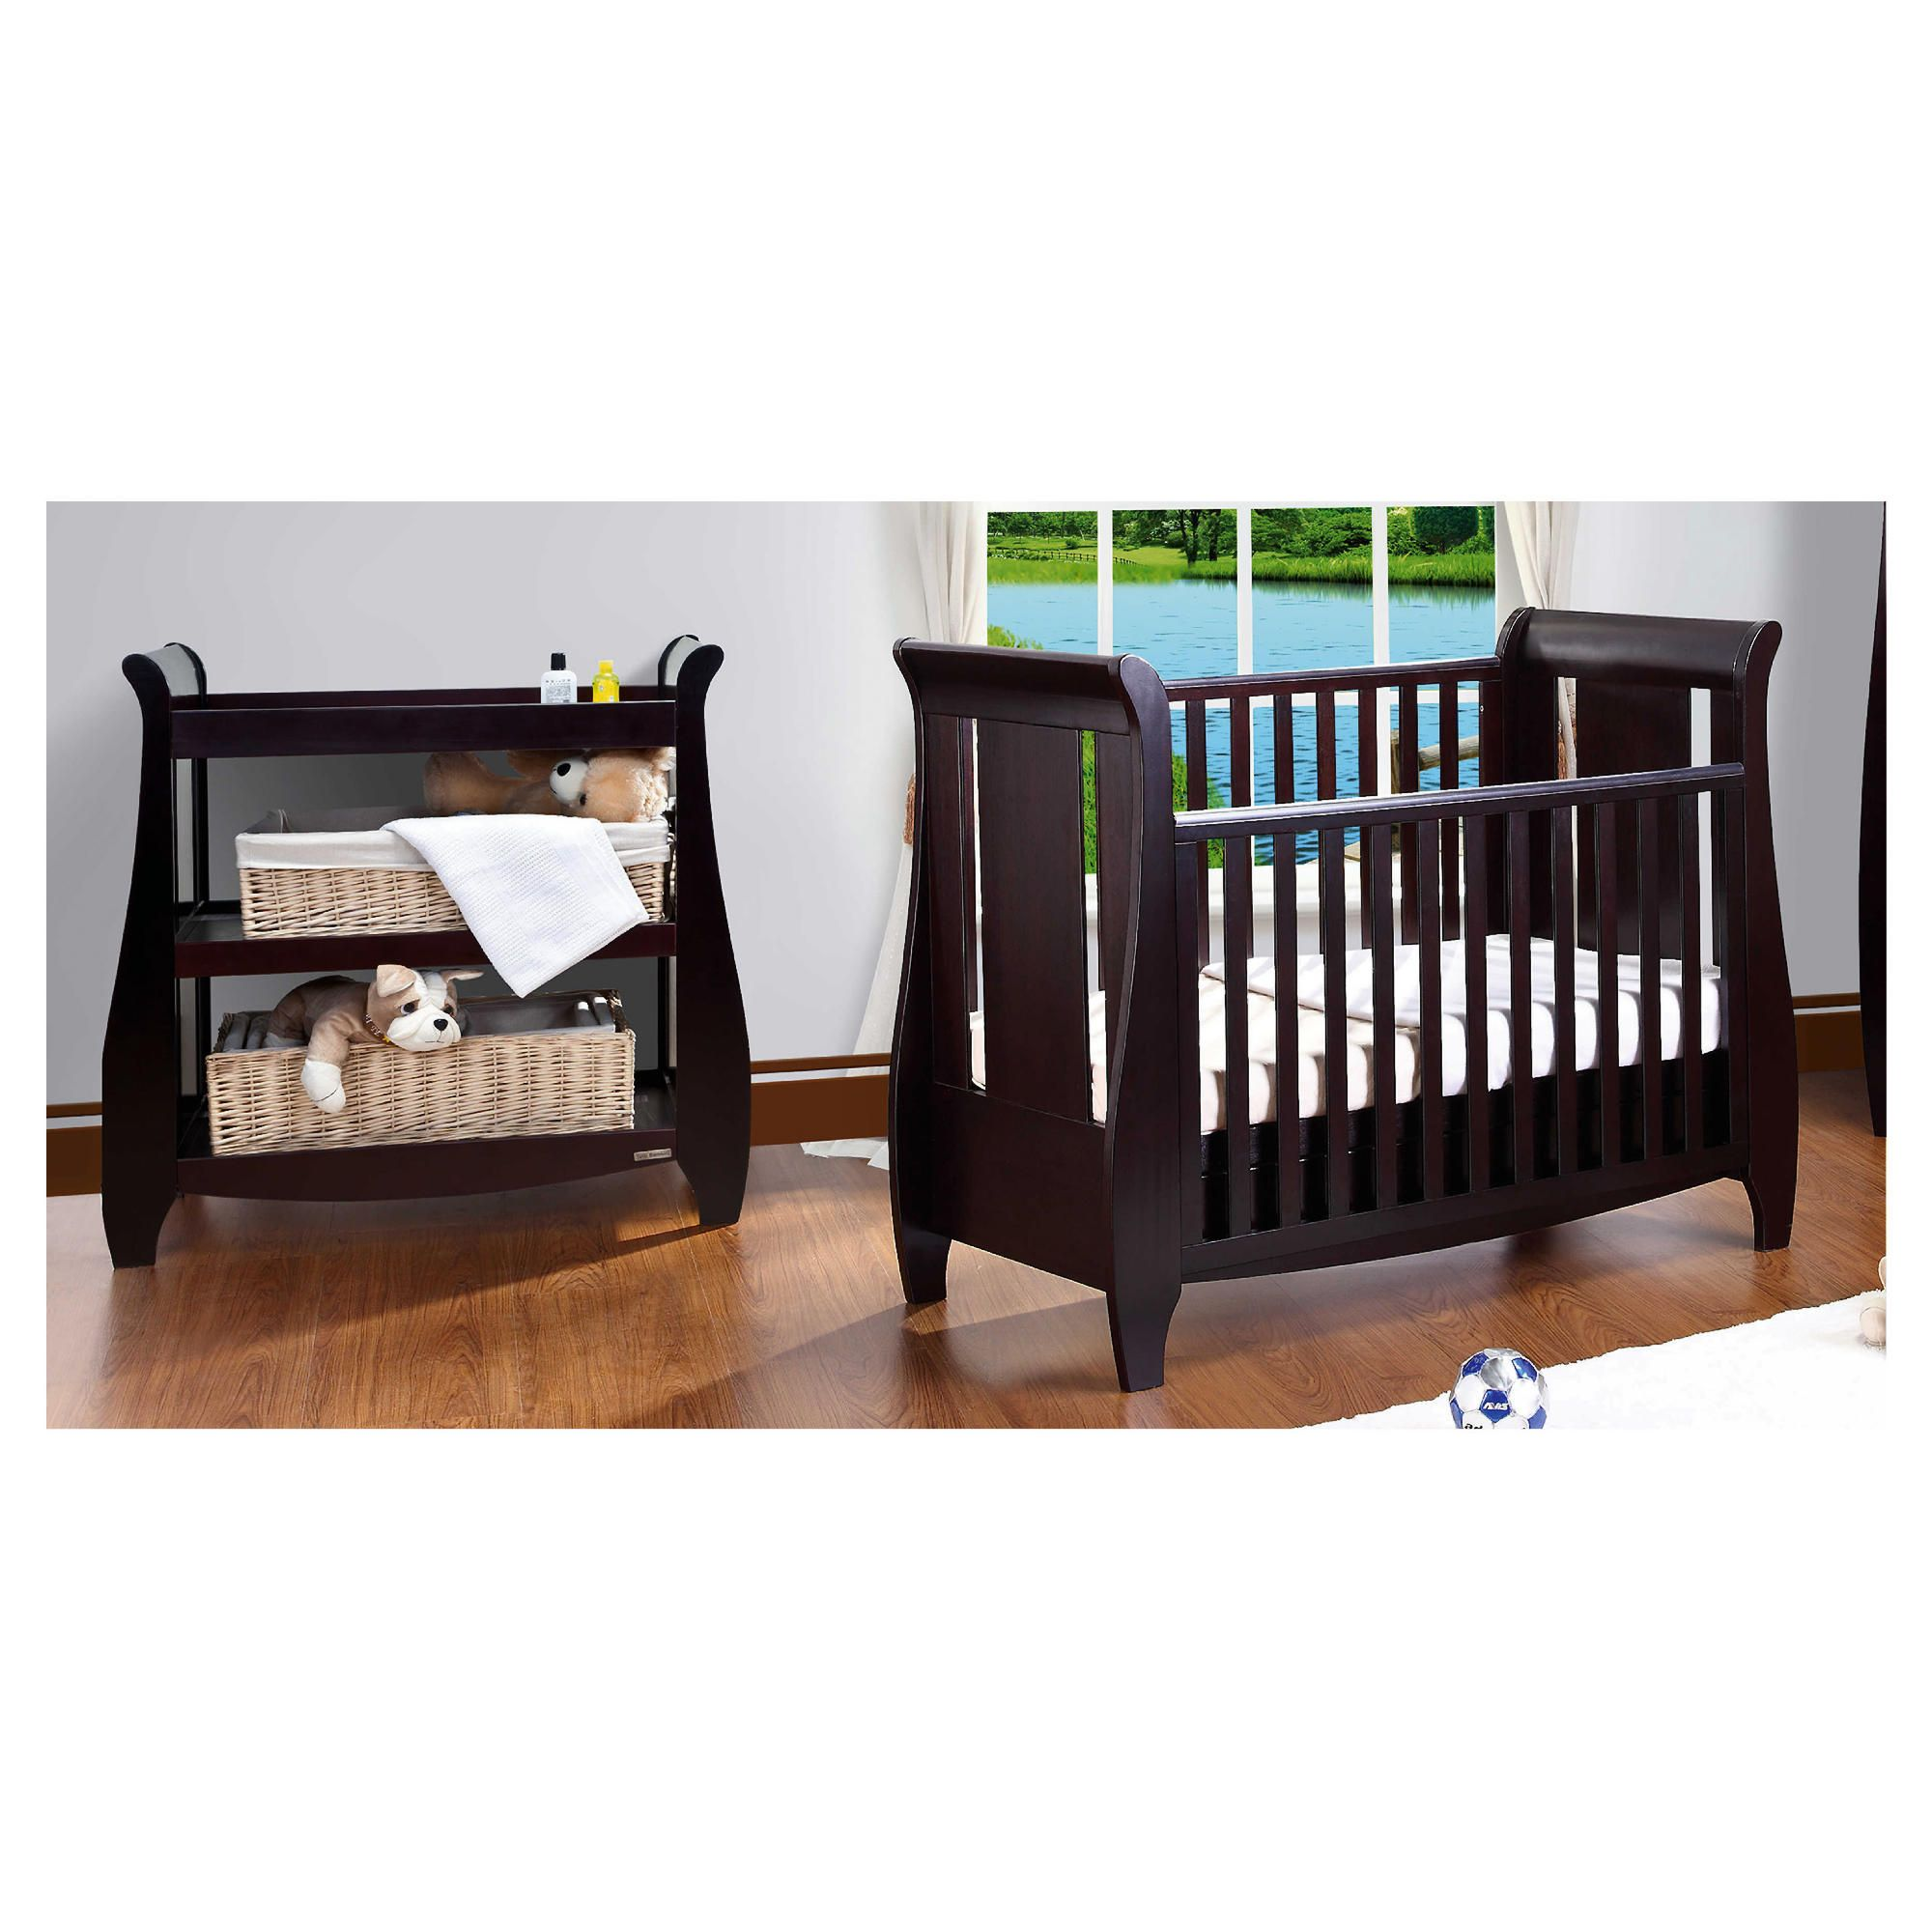 Tutti Bambini Lucas Cotbed with Shelf Changer, Espresso at Tesco Direct